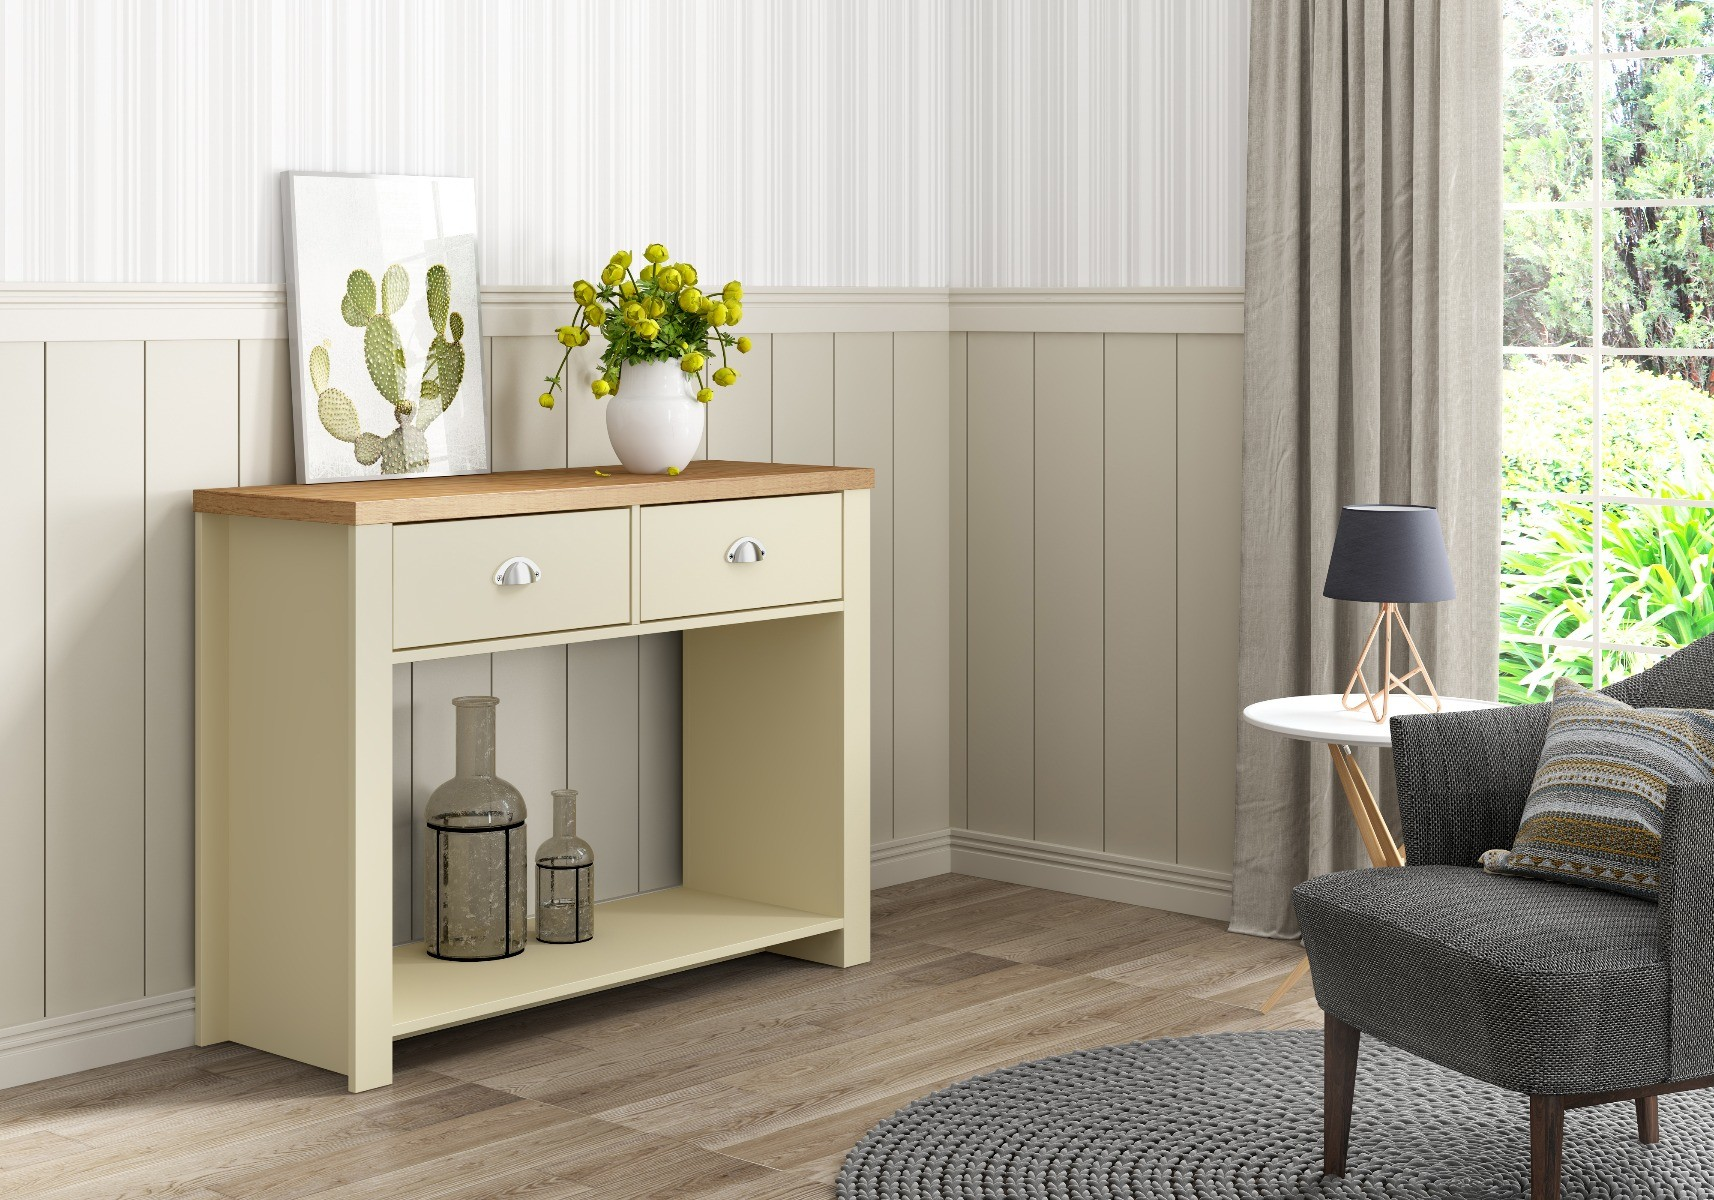 An image of Piper Cream & Oak Effect 2 Drawer Console Table